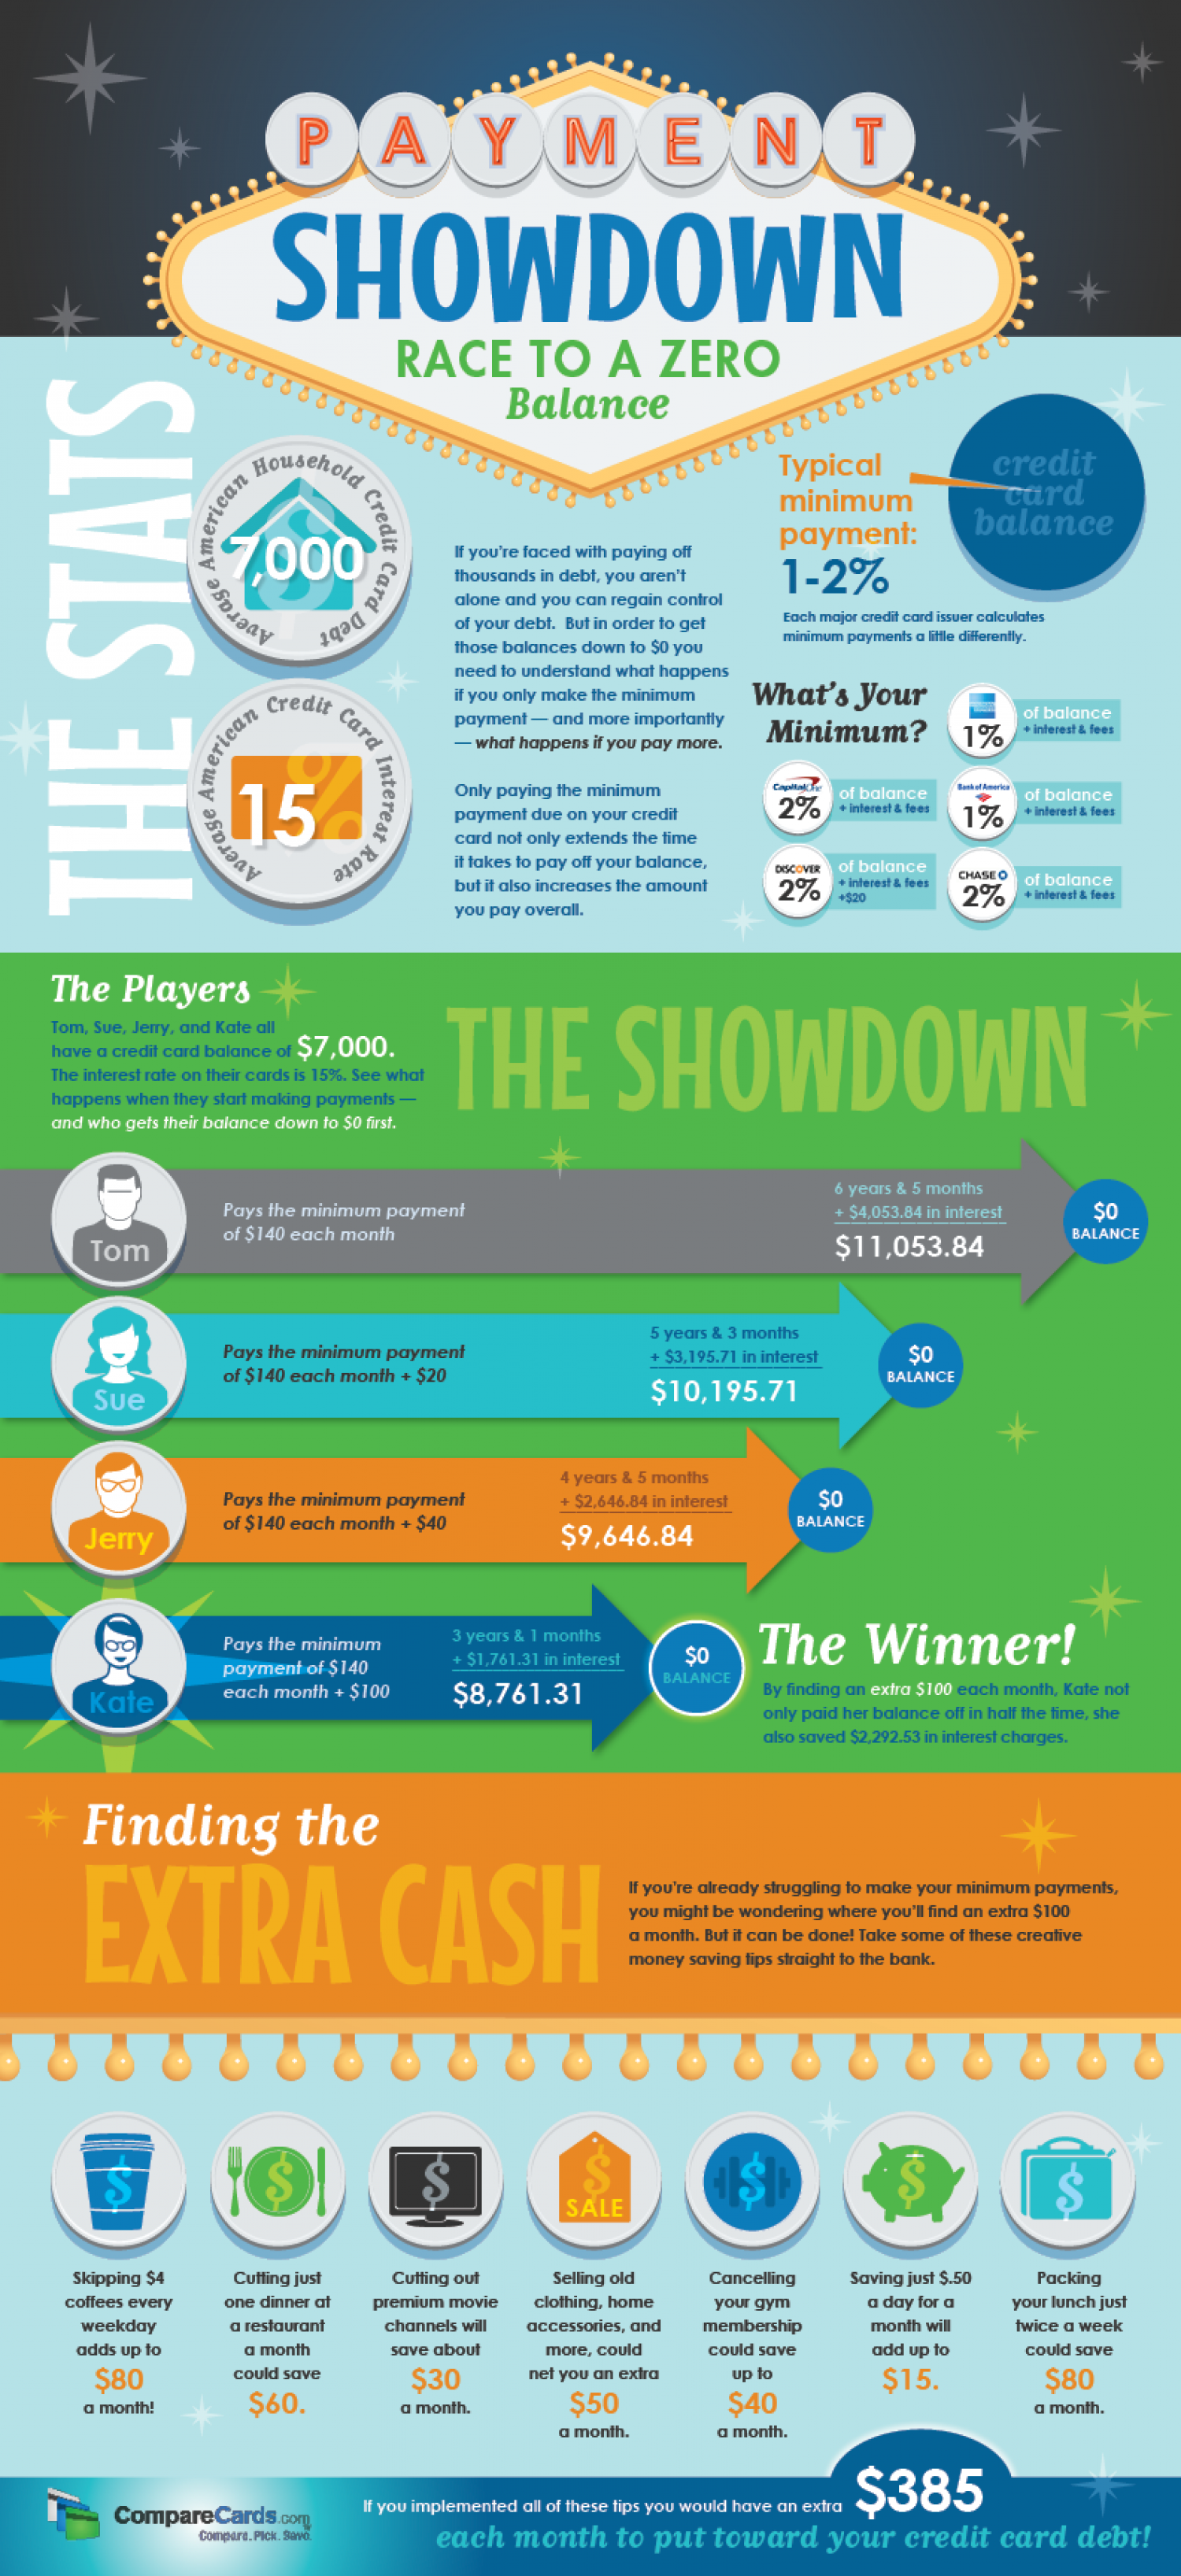 Payment Showdown: Race to a Zero Balance  Infographic